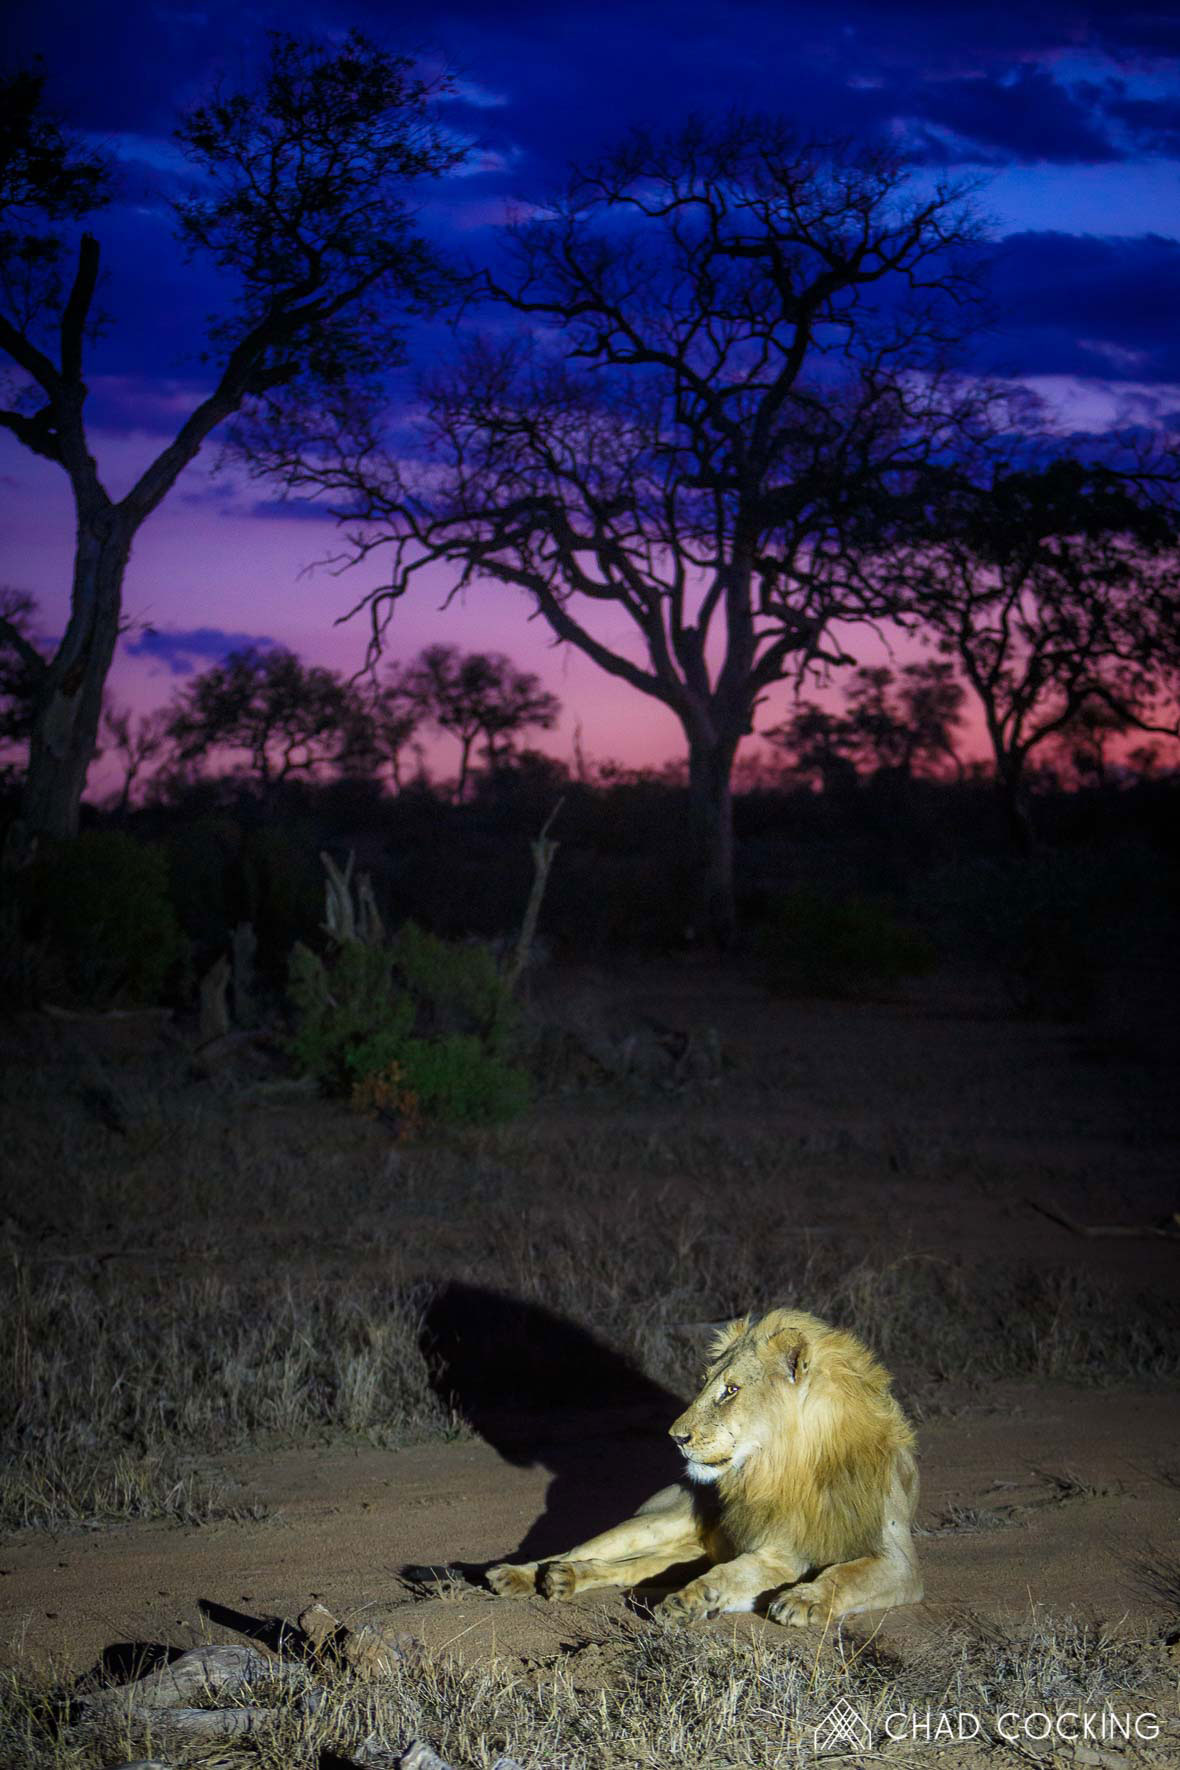 Tanda Tula - new male lion at sunset in the Timbavati